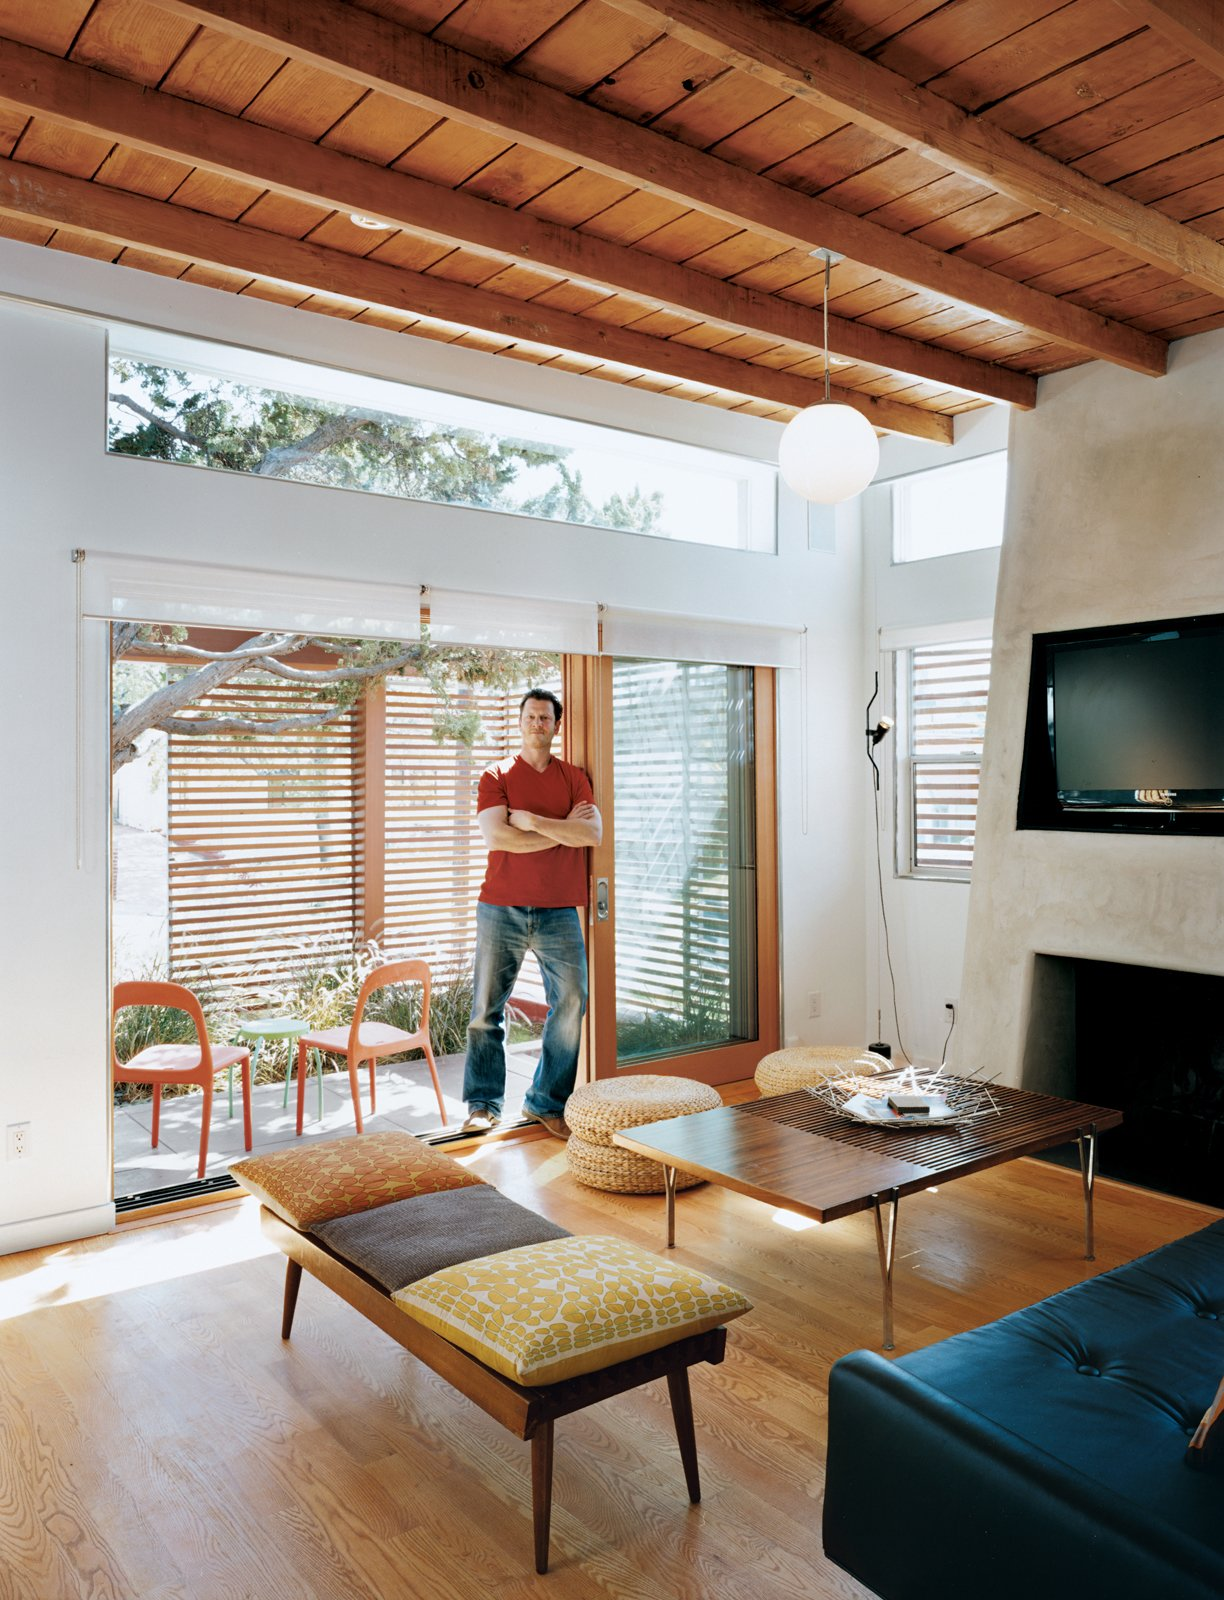 Architect, builder, and developer Jeremy Levine stands at the threshold of the front deck and the living room under his newly raised ceiling made of wood recycled from the original pitched roof. Tagged: Living Room, Light Hardwood Floor, Coffee Tables, Standard Layout Fireplace, and Wood Burning Fireplace. Casa Study House #1 - Photo 1 of 10